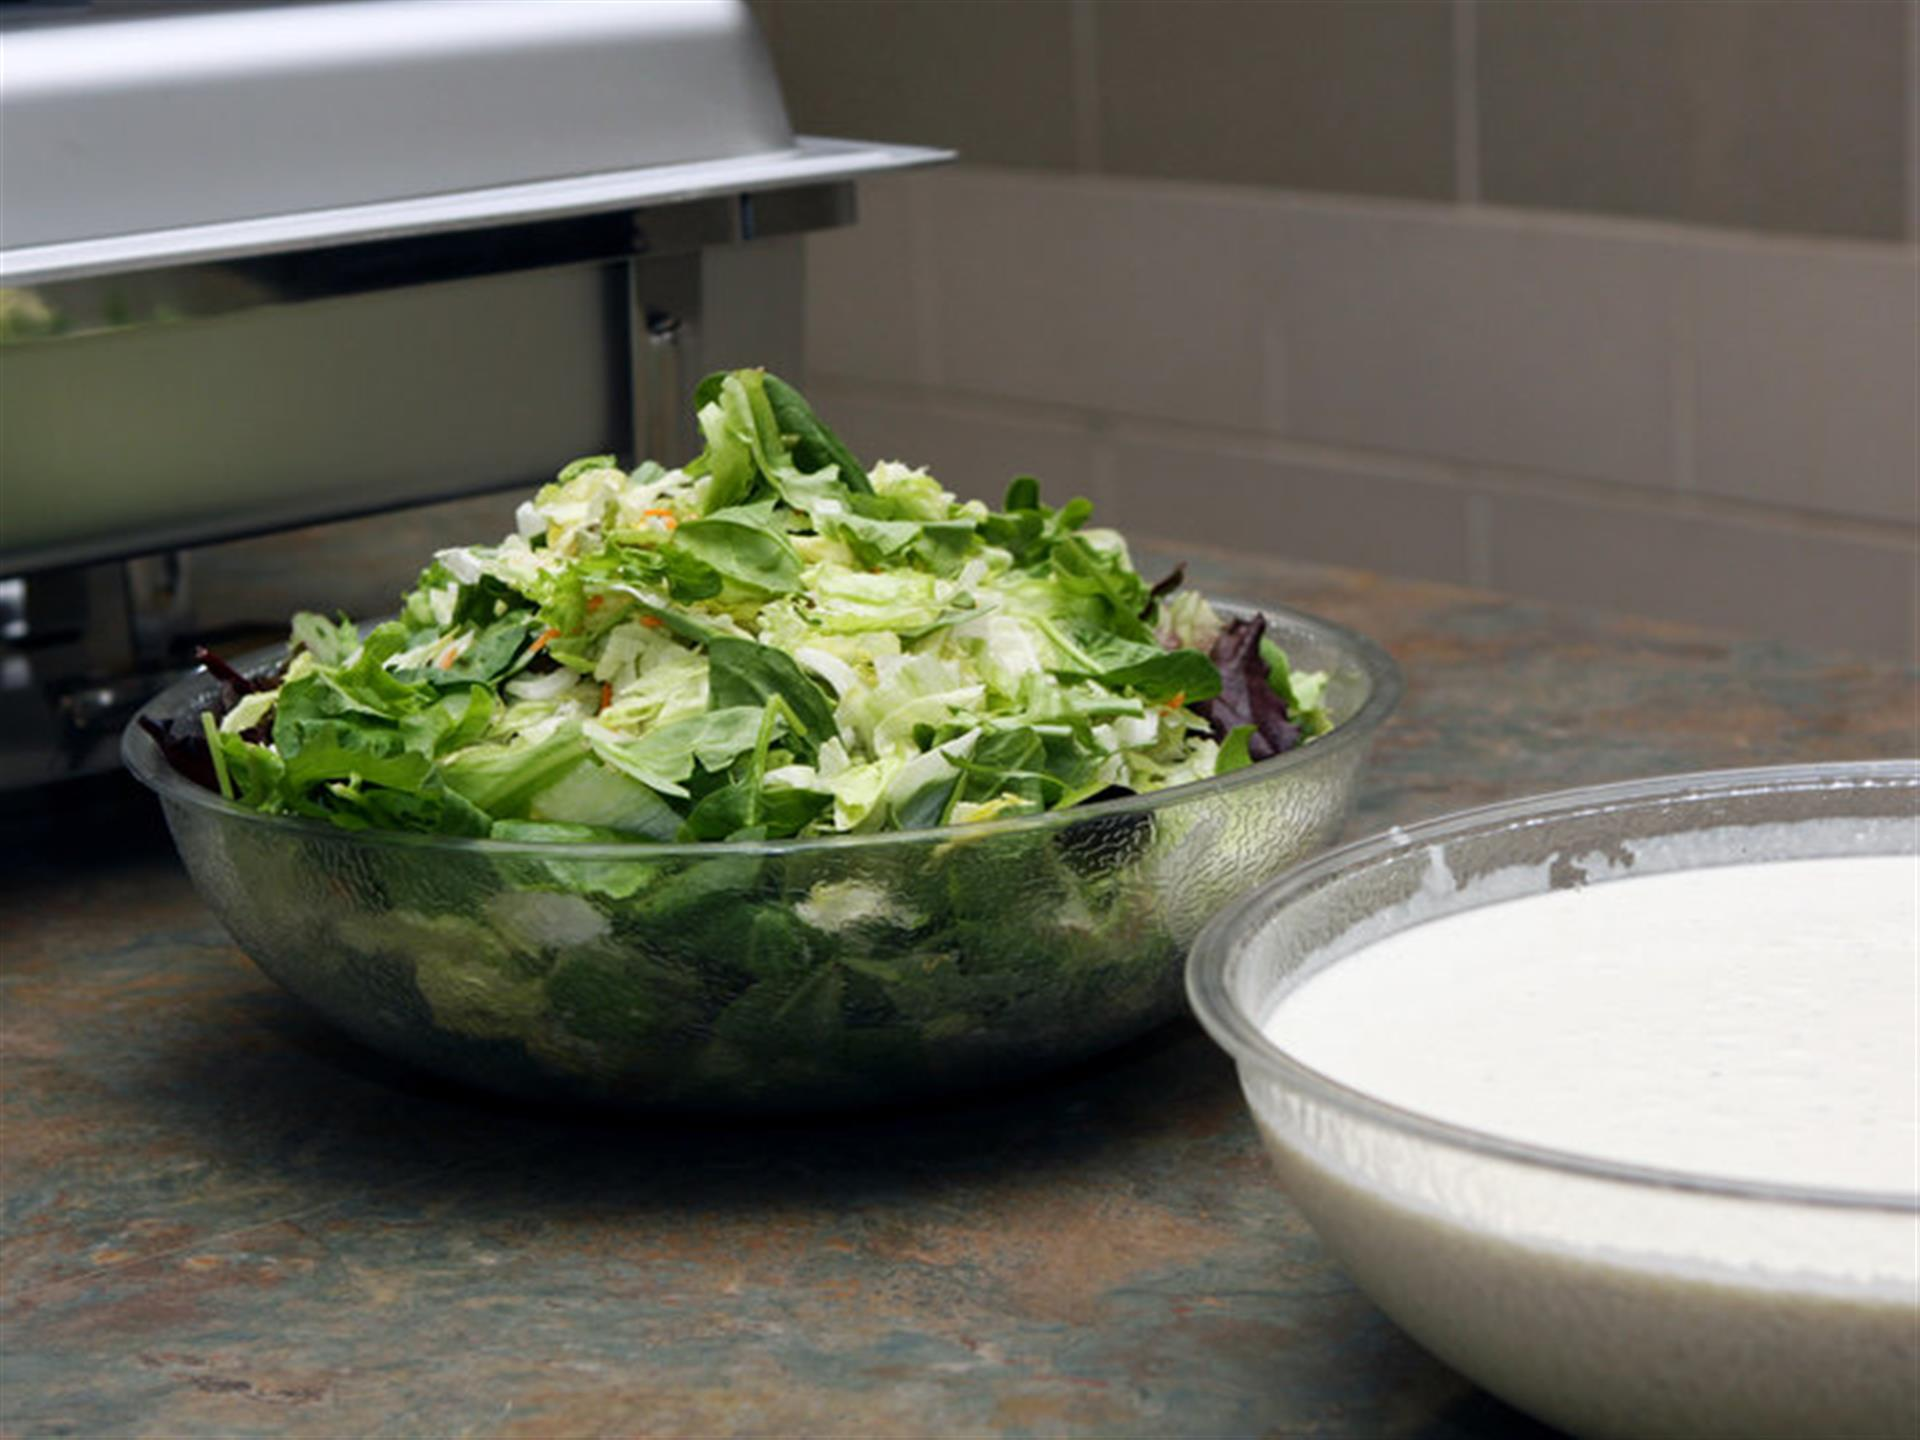 Large bowl of salad